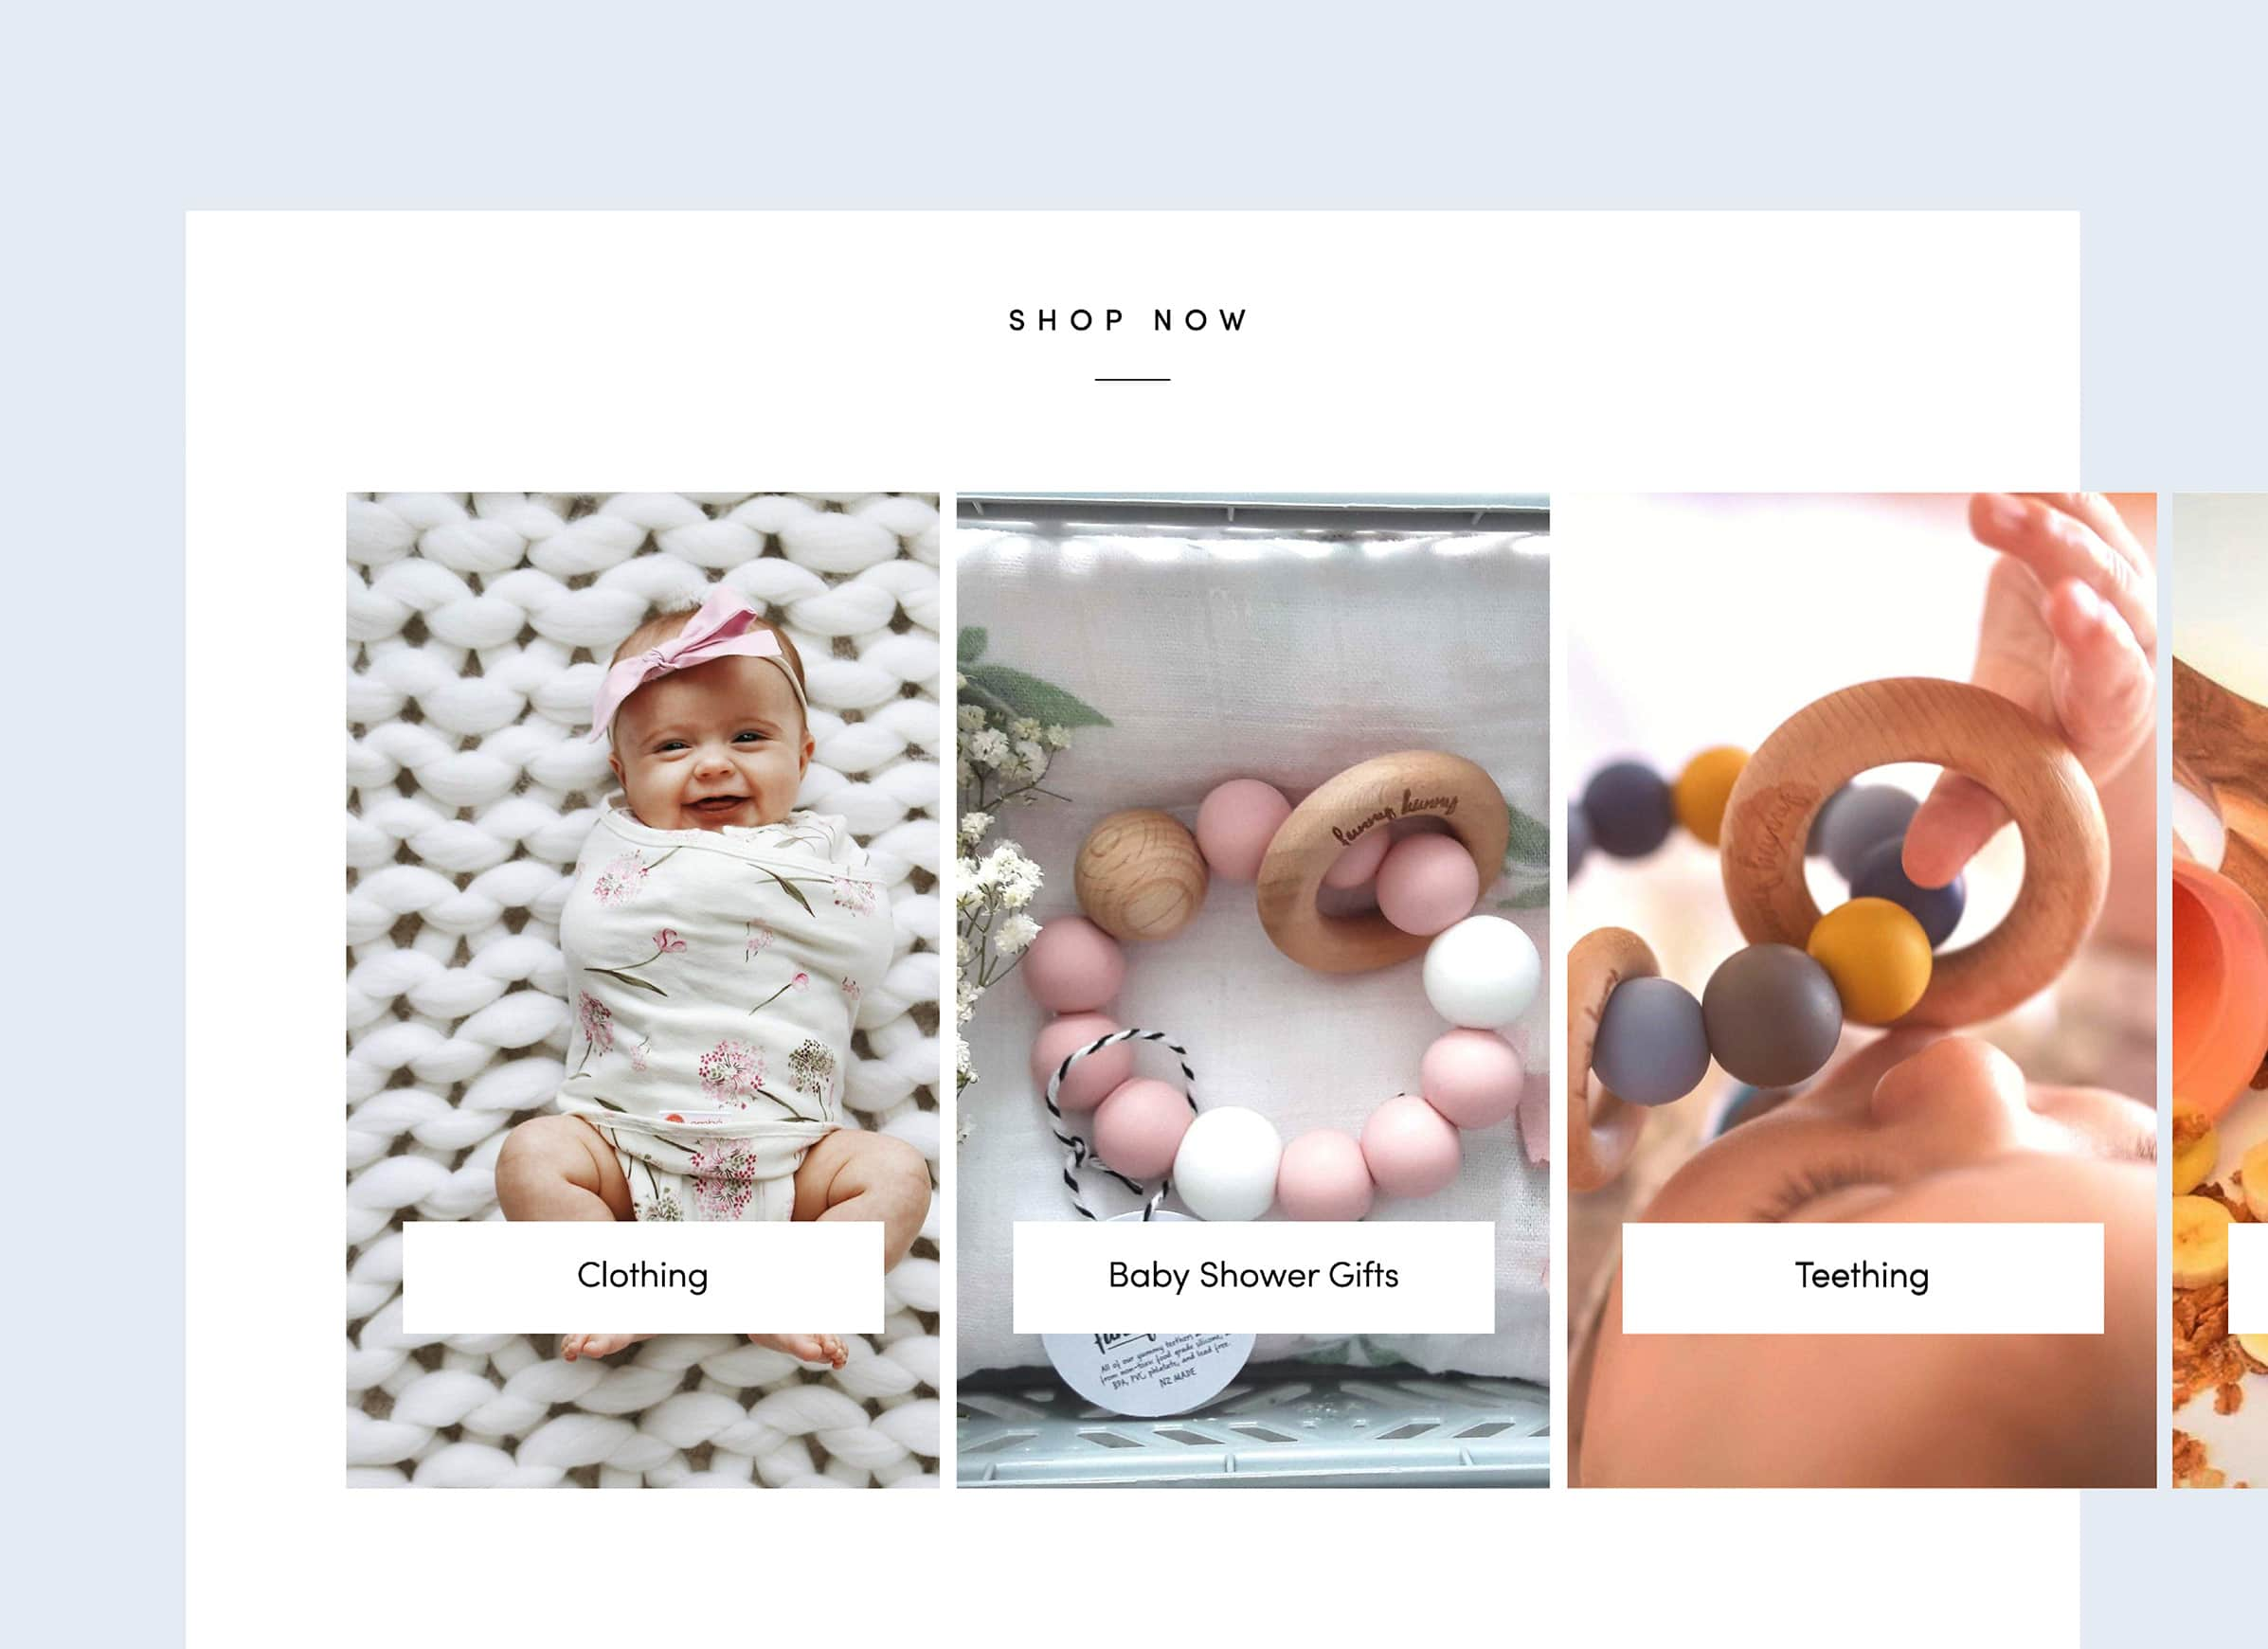 Best ecommerce website design for baby and kids stores